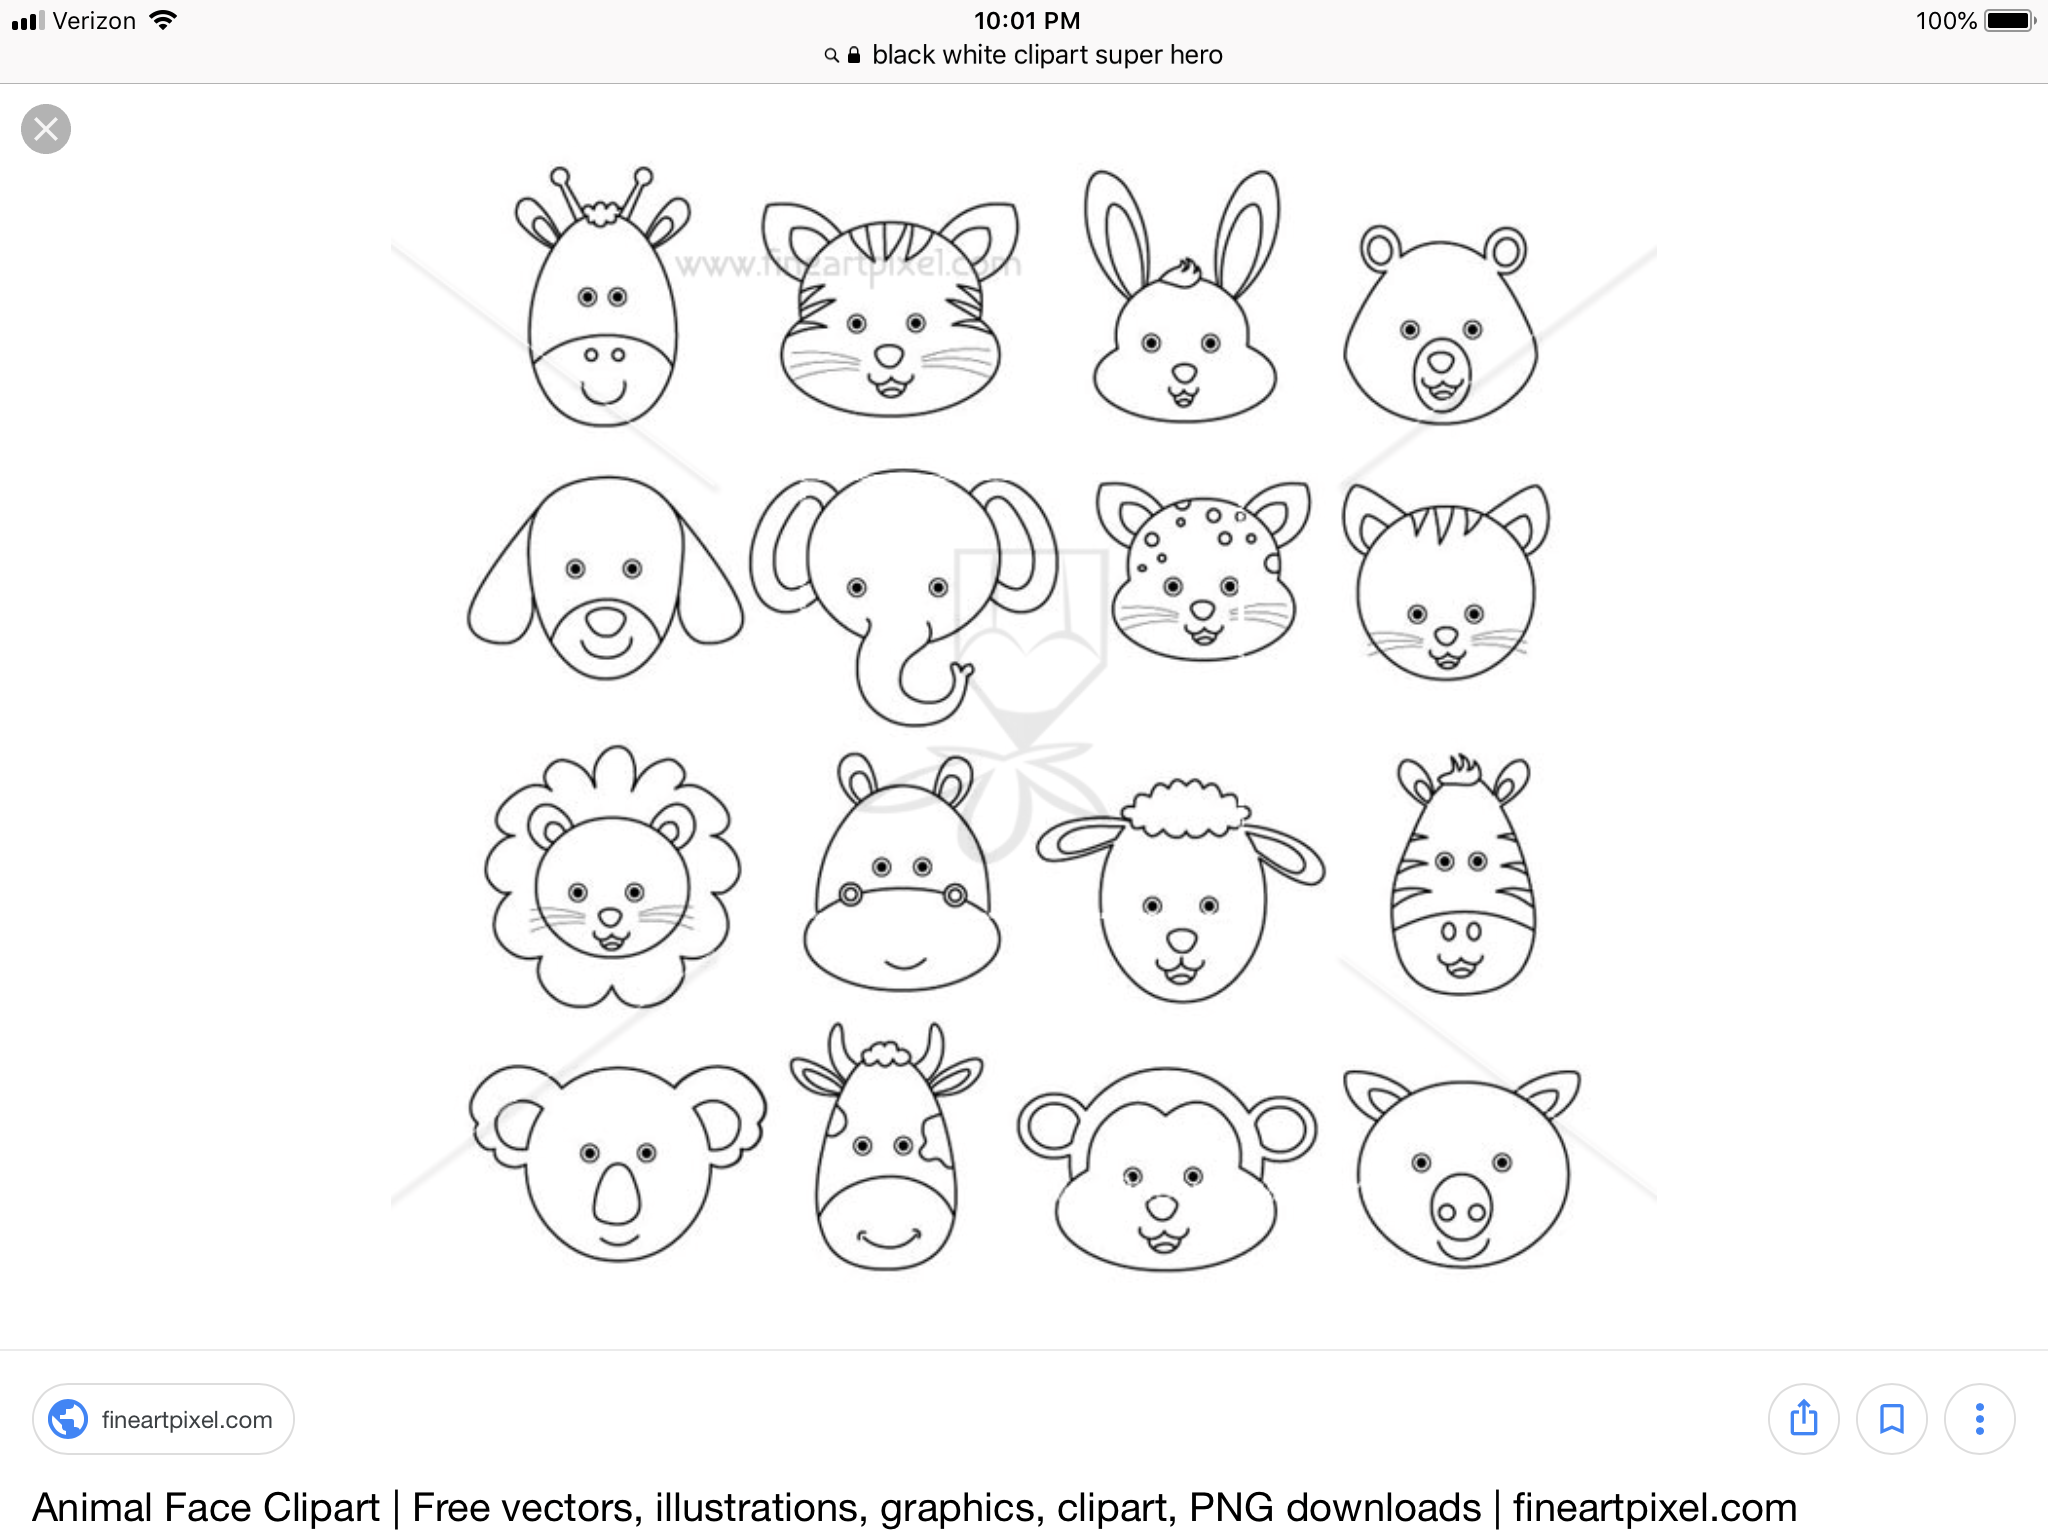 Pin By Bliss Hariel On Clipart Free Clip Art Animal Faces Clip Art